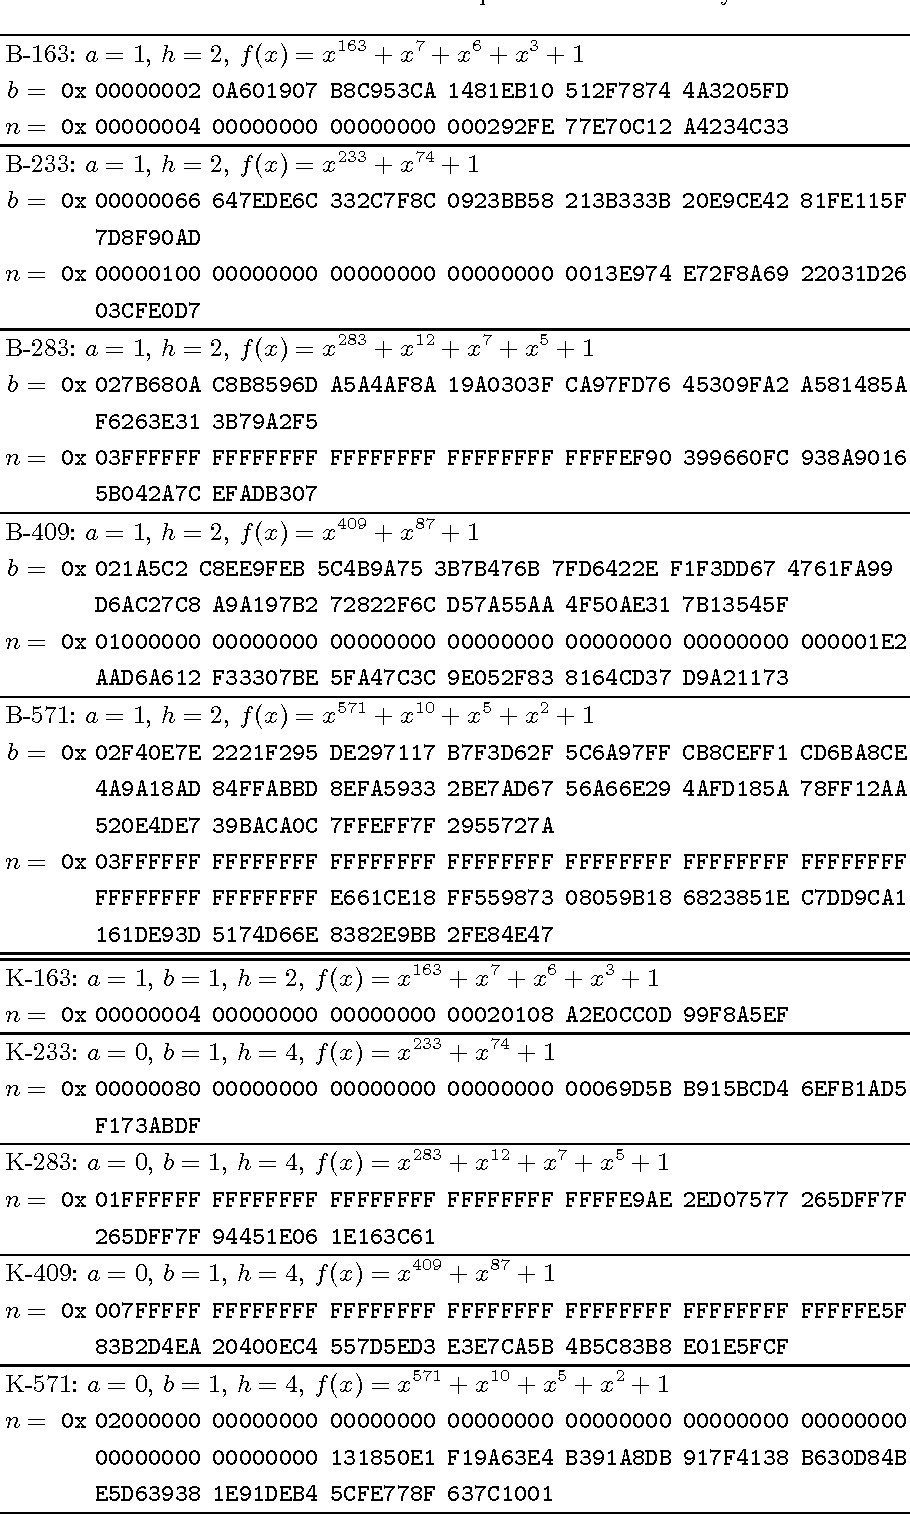 Table 3. NIST-recommended elliptic curves over binary fields.